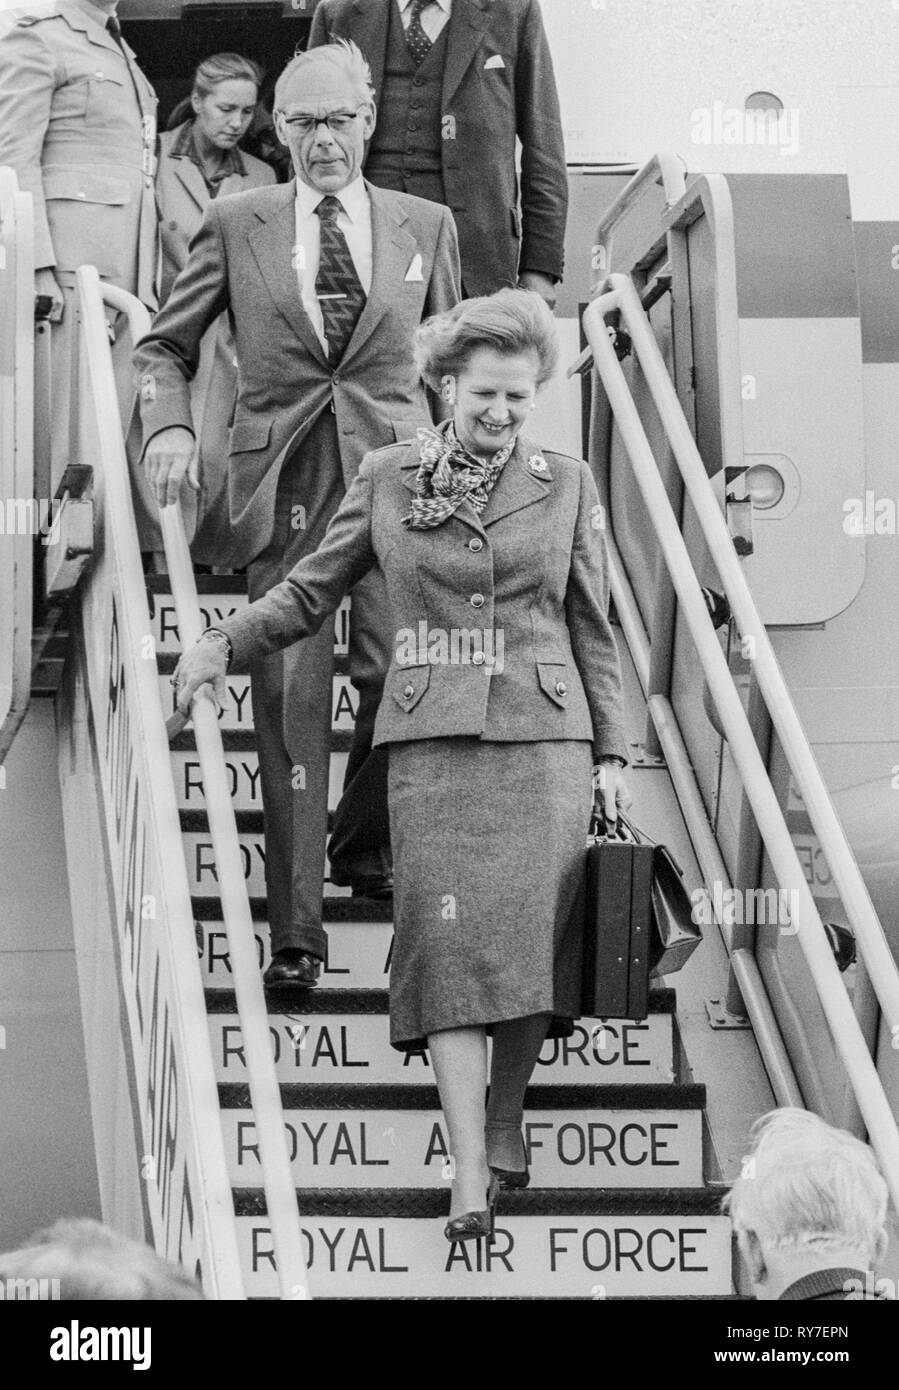 The Prime Minister Margaret Thatcher and husband Denis return to London after attending the commonwealth Heads of Government meeting(CHOGH) in Melbourne, Australia. - Stock Image